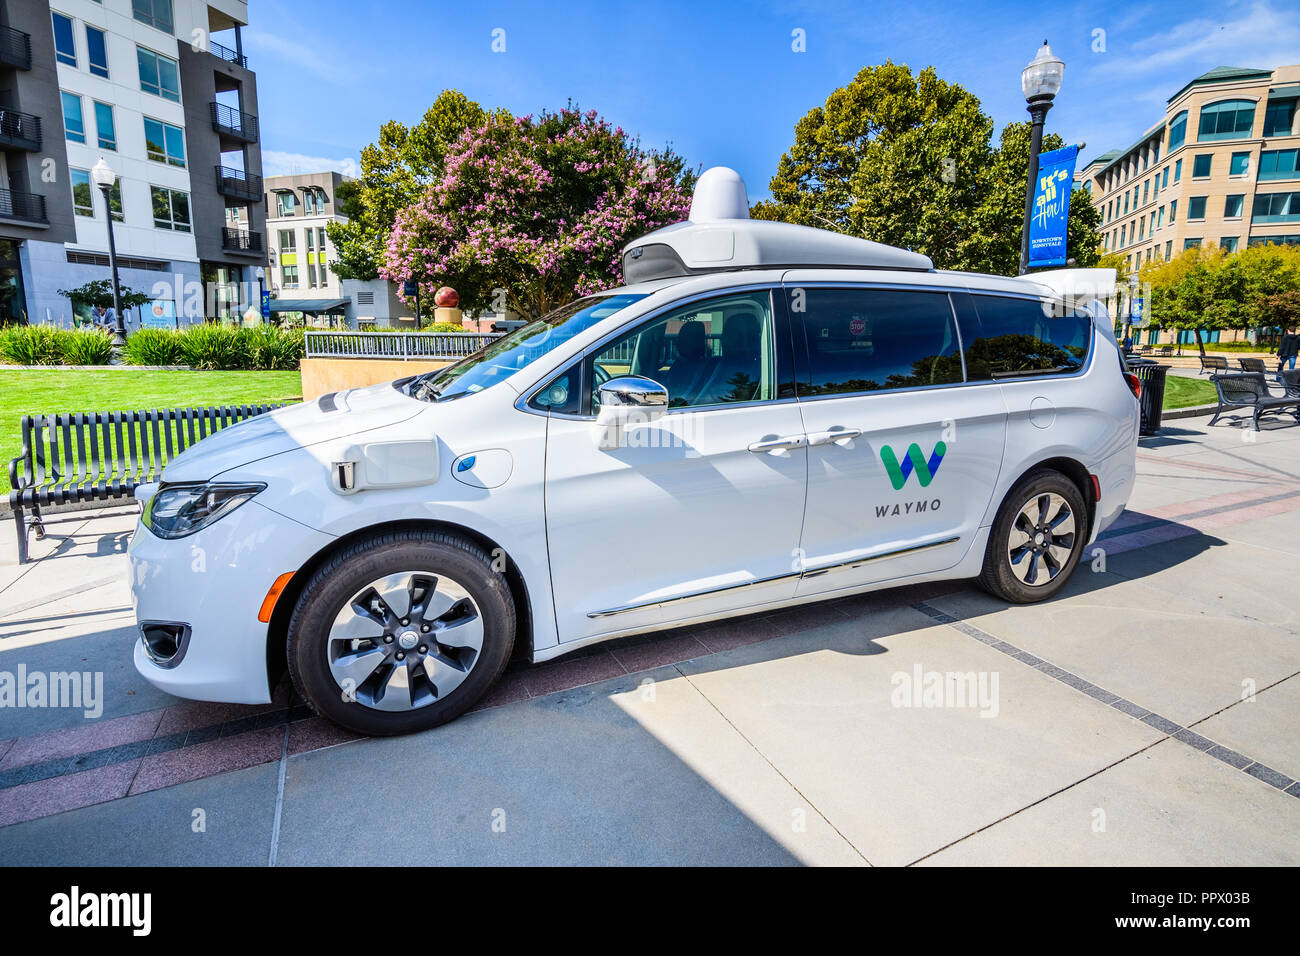 September 27, 2018 Sunnyvale / CA / USA - Close up of Waymo self driving car displayed at 'Sunnyvale Technology Business Expo' in Silicon Valley - Stock Image